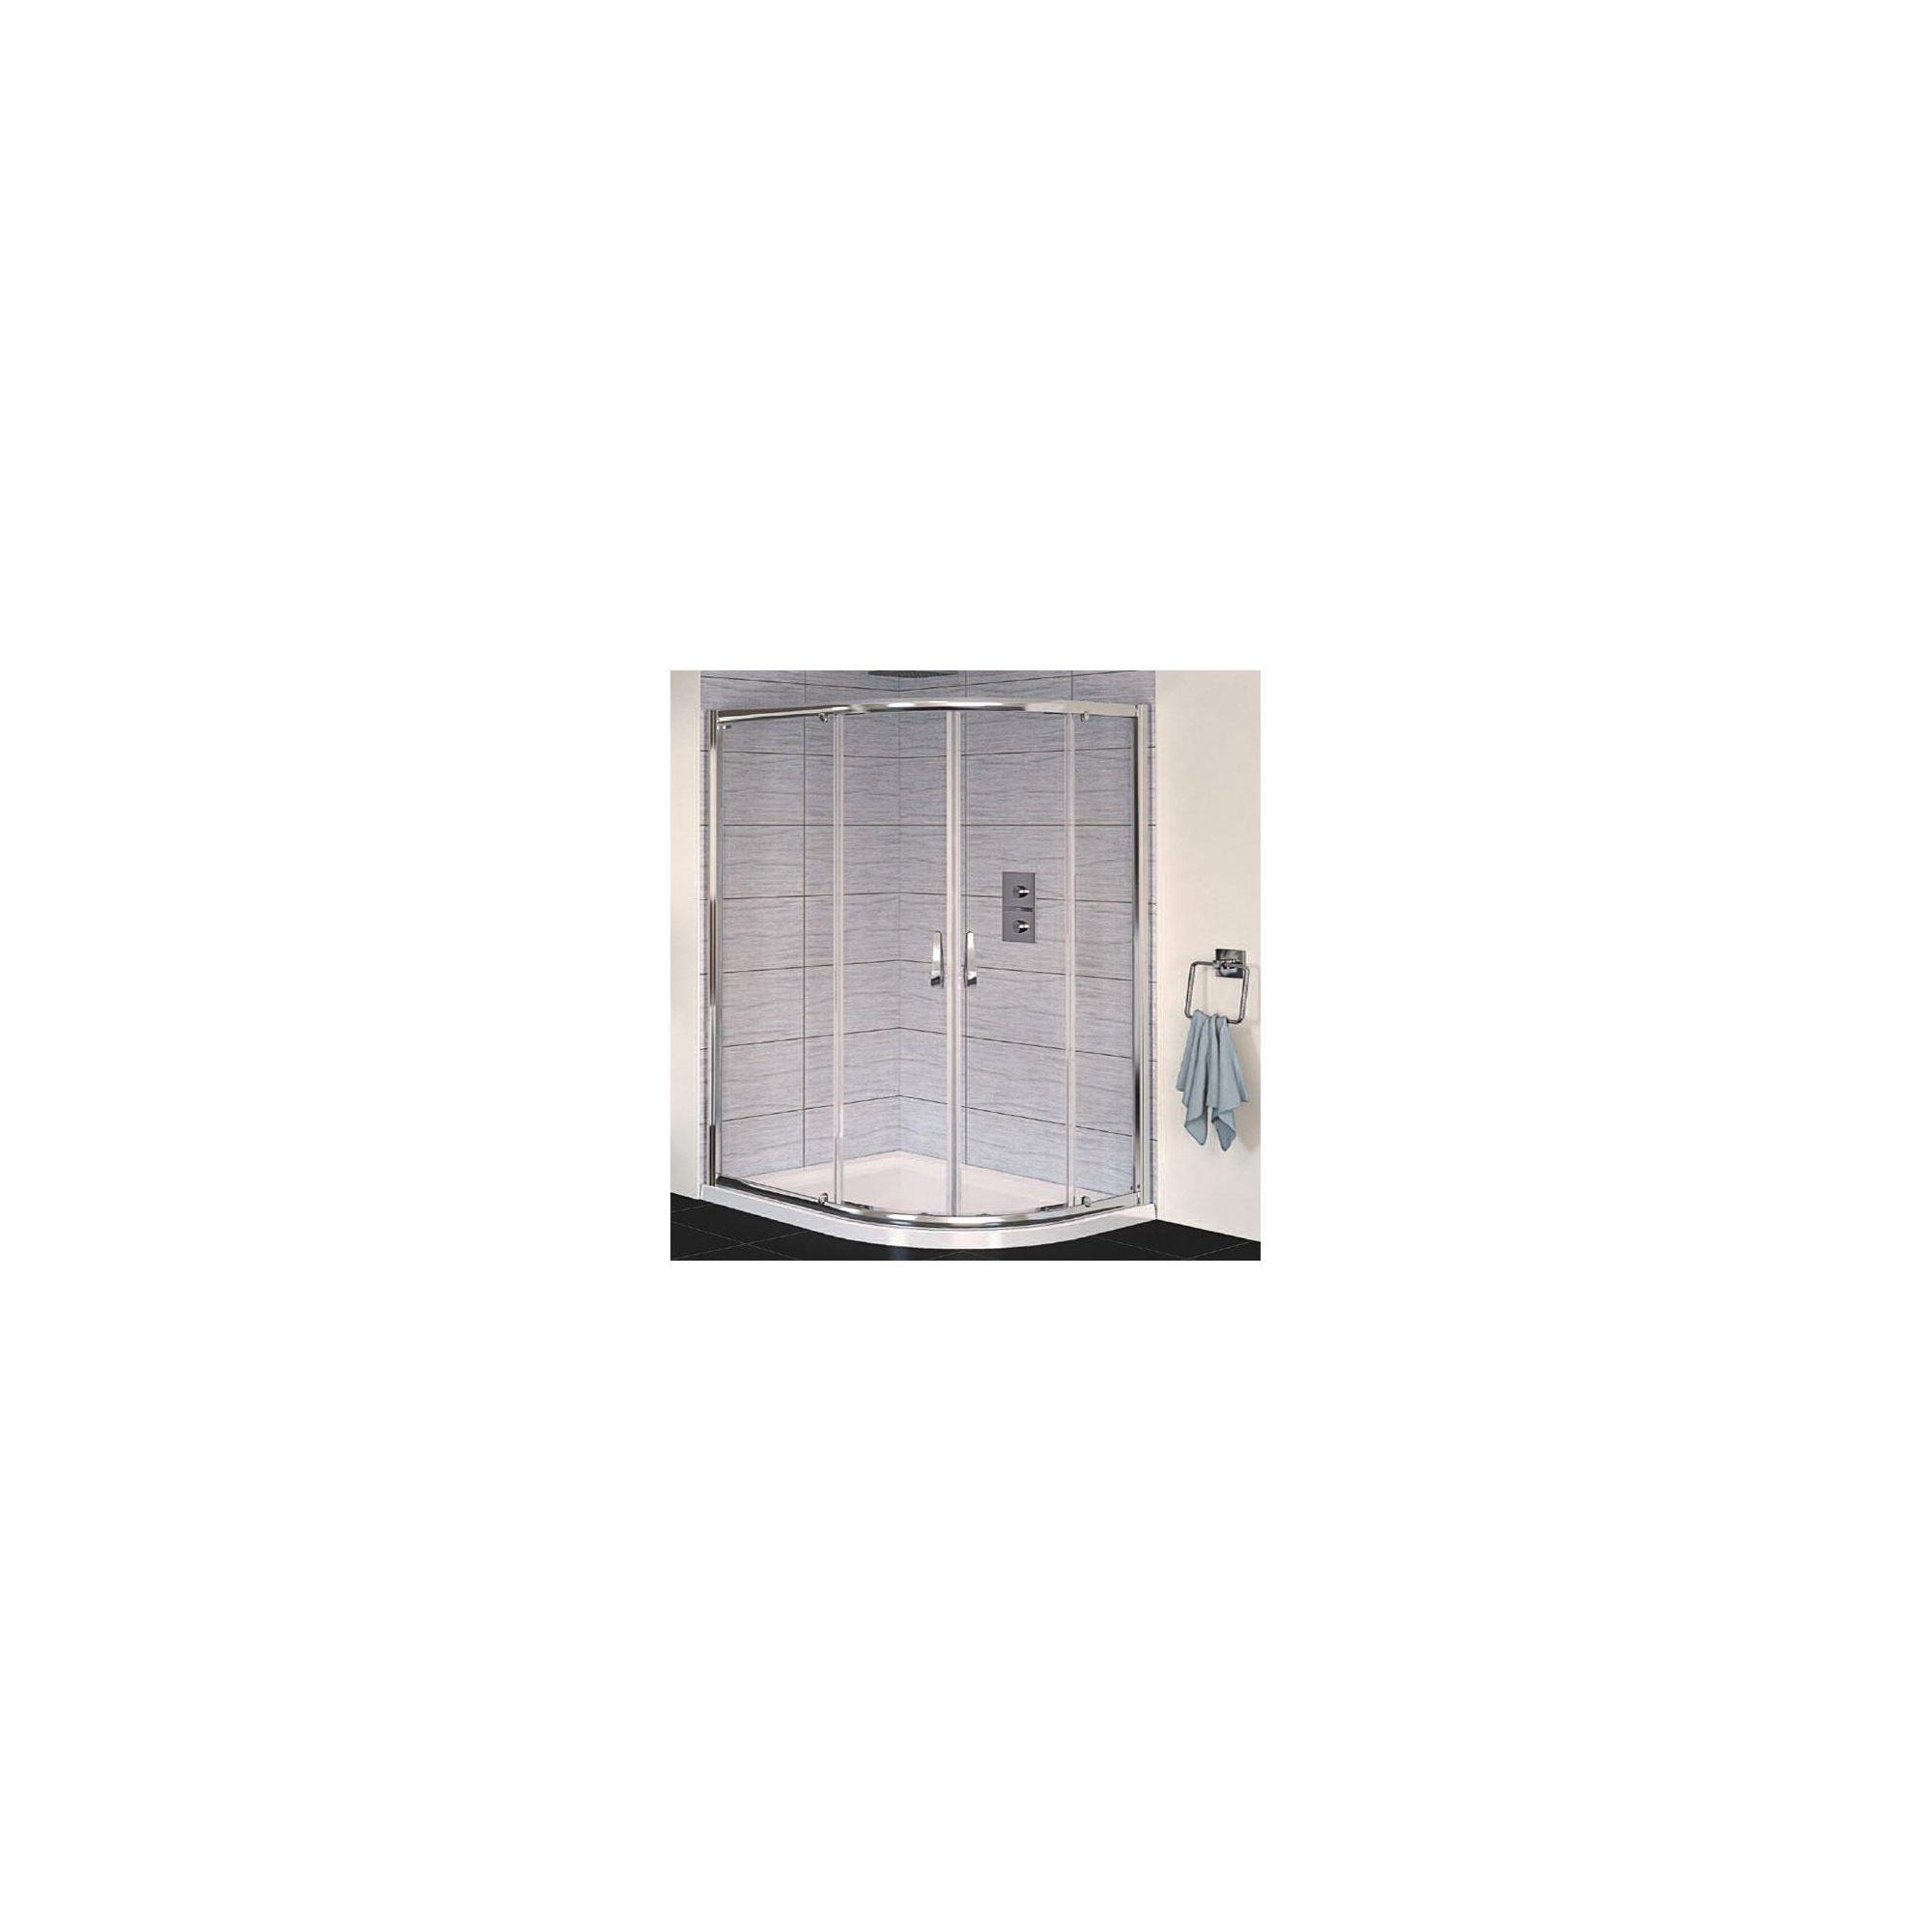 Aqualux AQUA6 Offset Quadrant Shower Door, 1200mm x 900mm, Polished Silver Frame, 6mm Glass at Tesco Direct